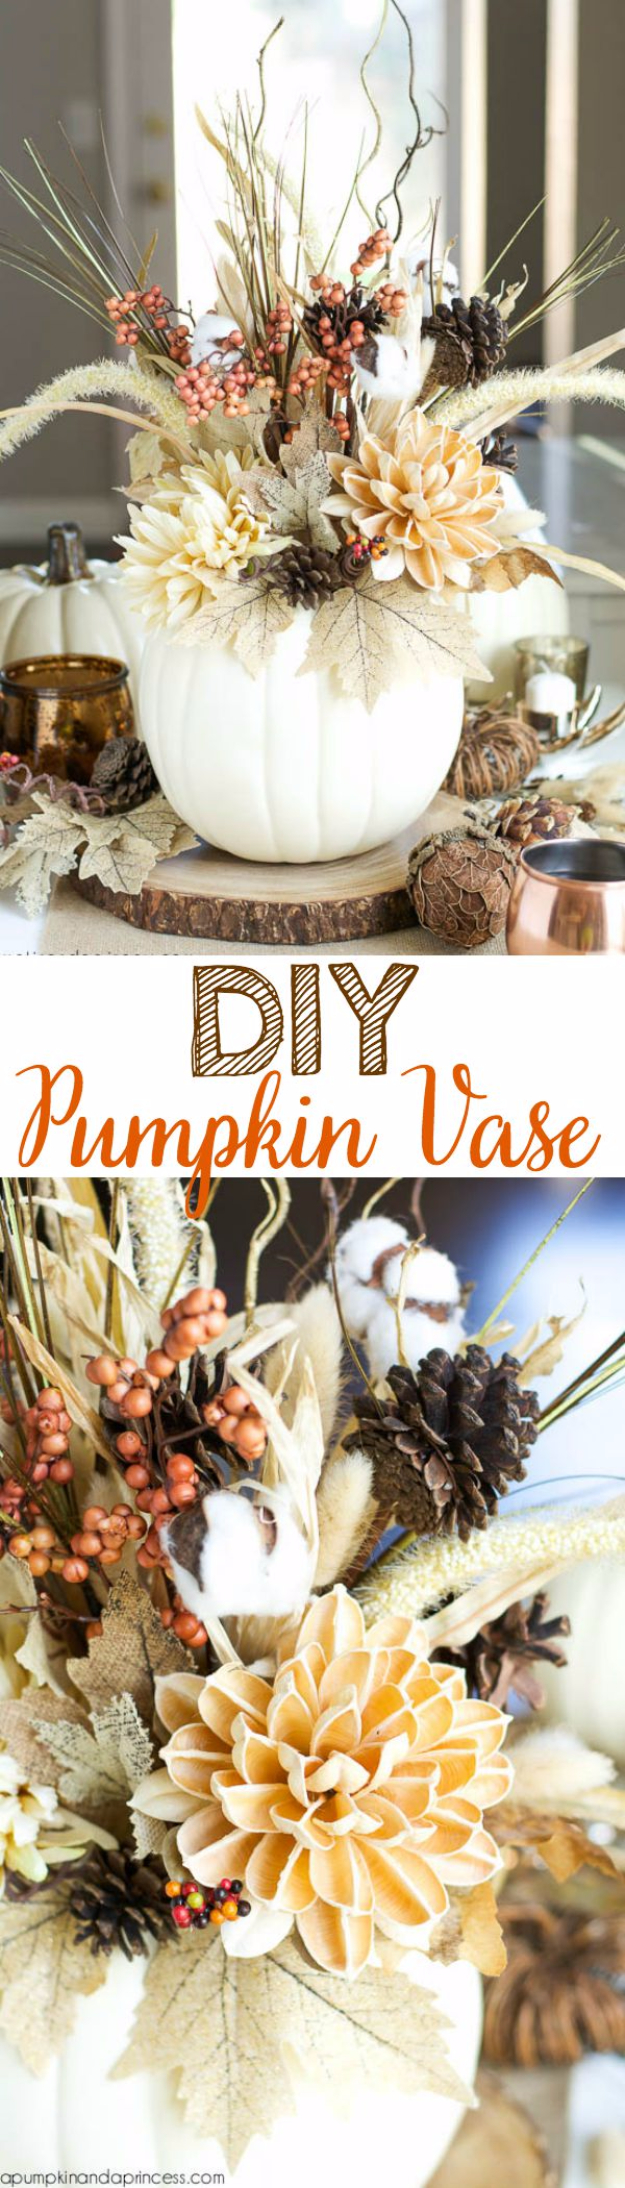 DIY Thanksgiving Decor Ideas - DIY Pumpkin Vase - Fall Projects and Crafts for Thanksgiving Dinner Centerpieces, Vases, Arrangements With Leaves and Pumpkins - Easy and Cheap Crafts to Make for Home Decor #diy